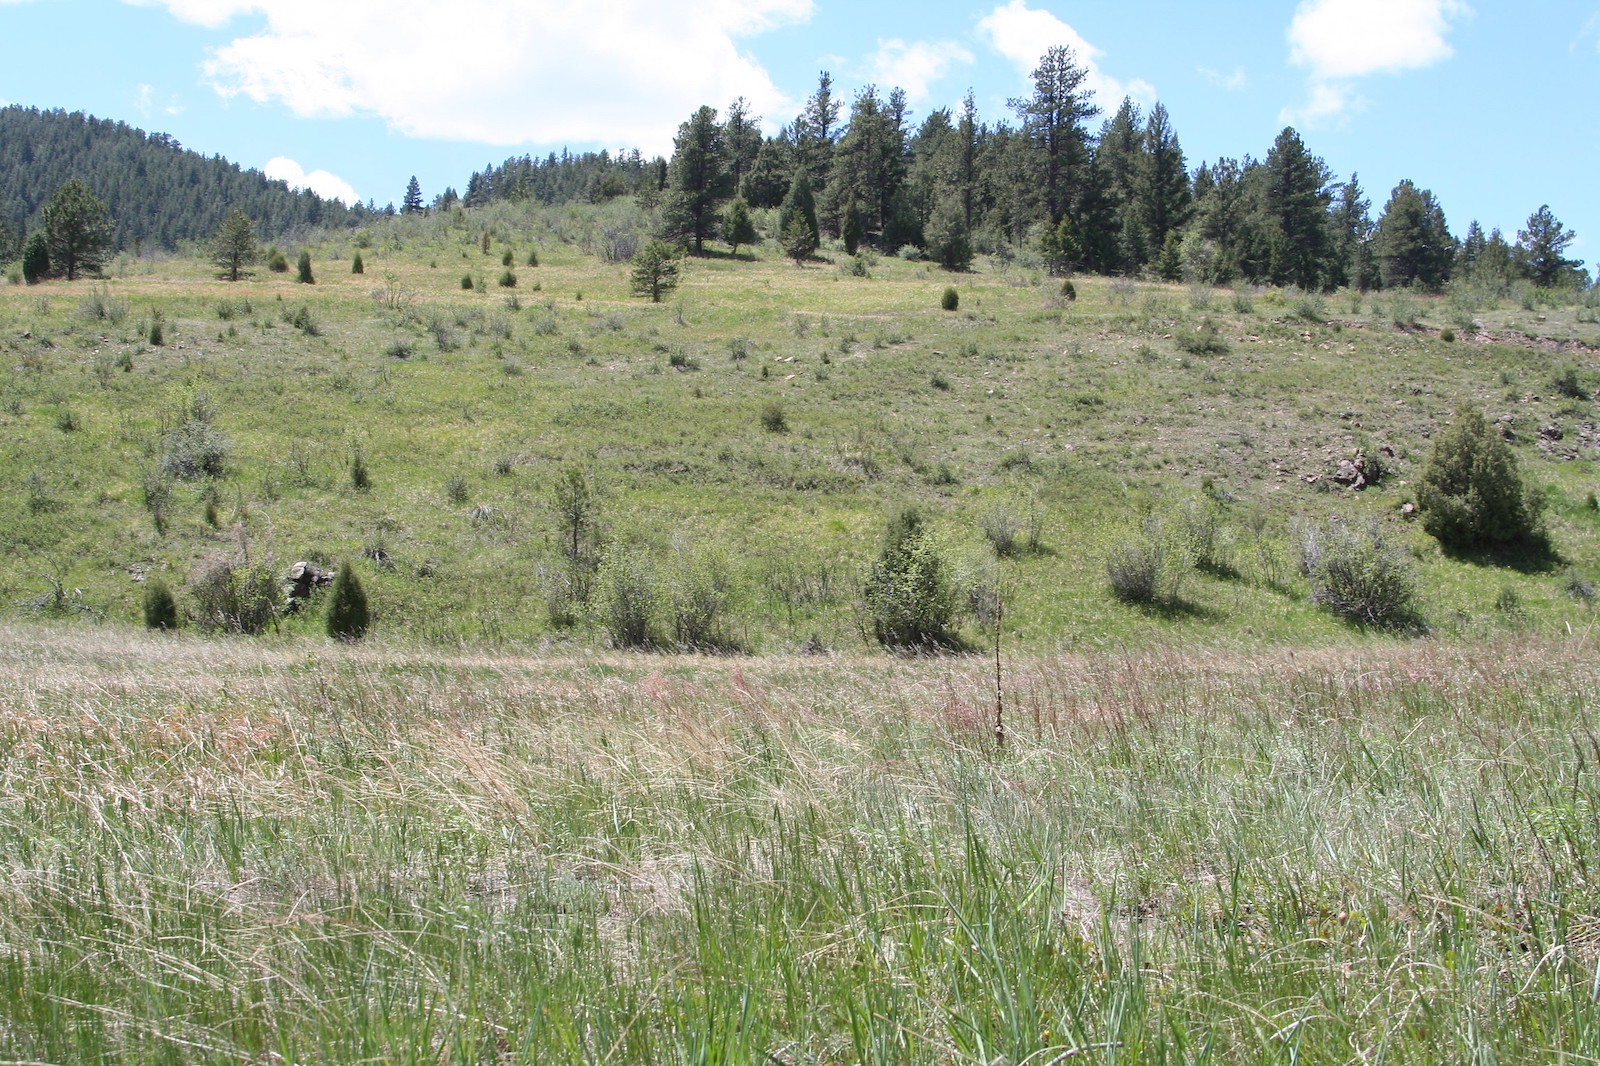 Image of the landscape at Lair o' the Bear Park in Idledale, Colorado